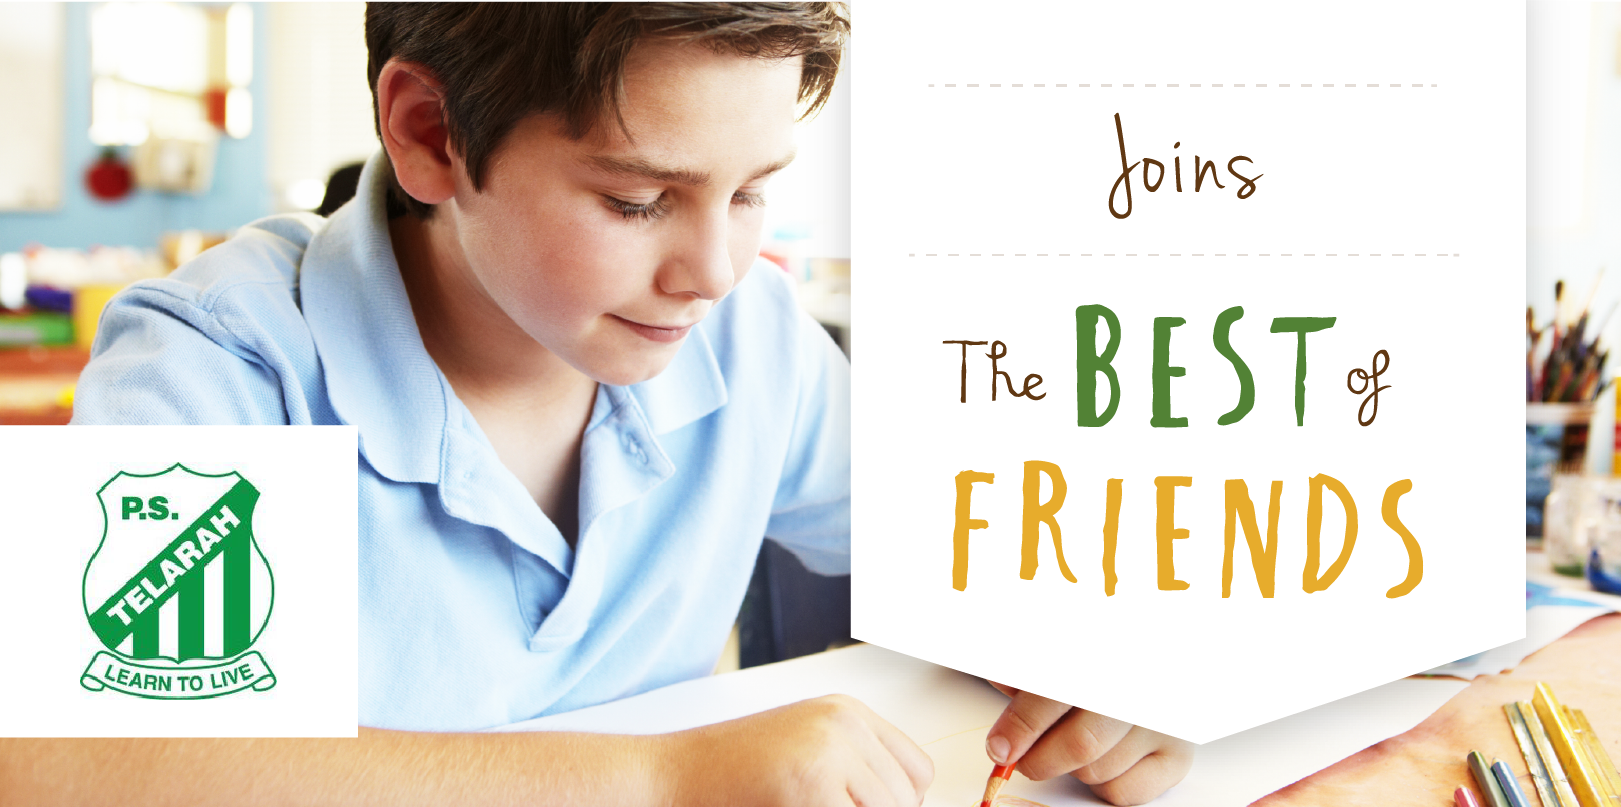 The Best of Friends is a Social and Emotional program by Quirky Kid used in Public shools